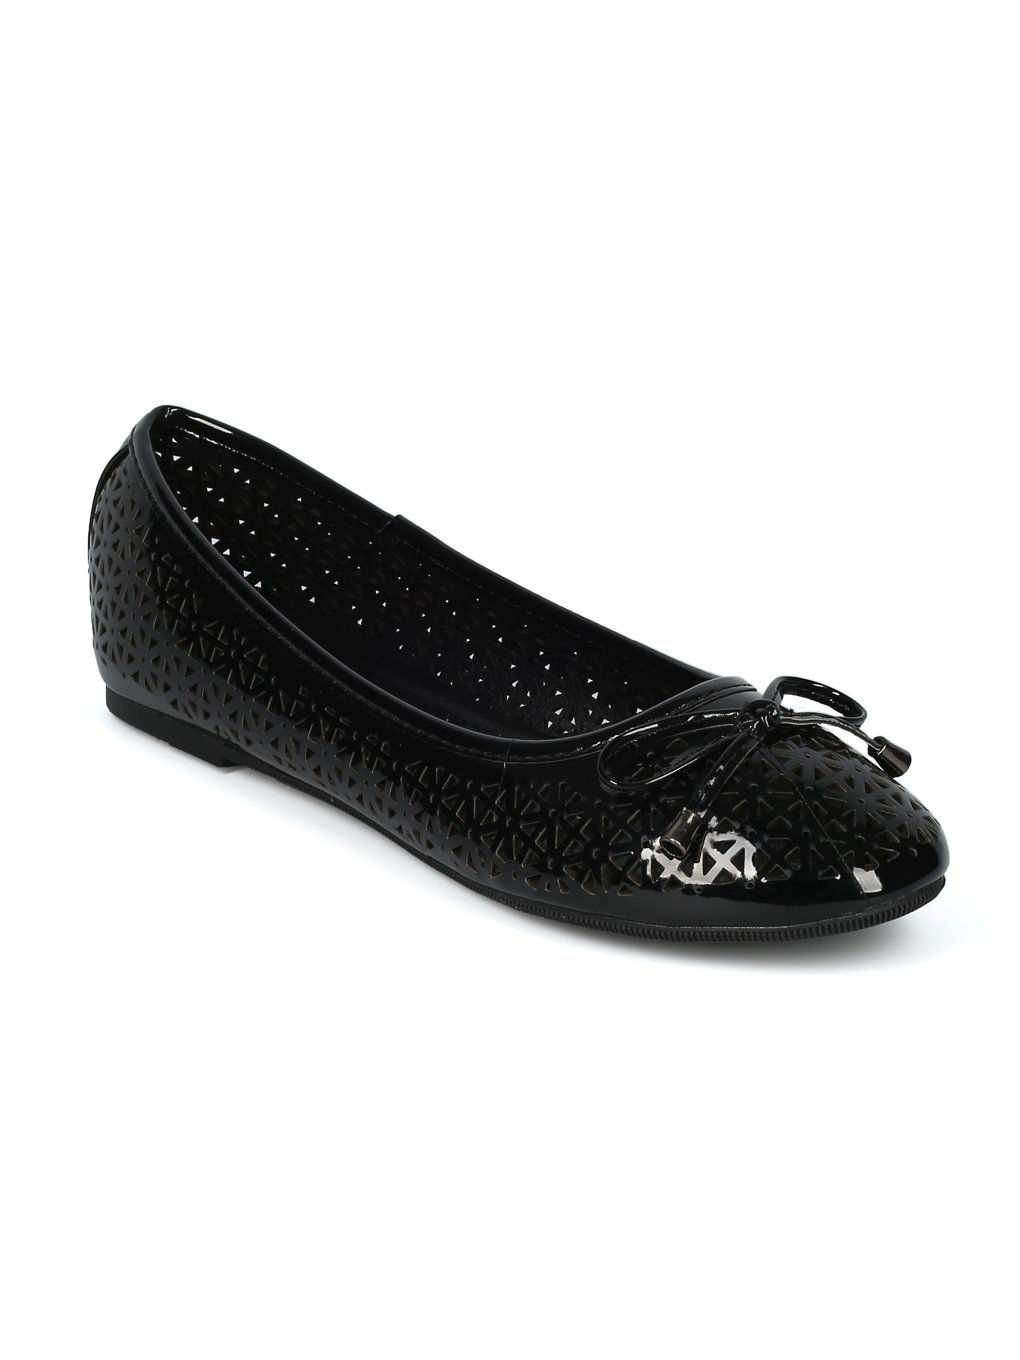 Alrisco Women Round Toe Bow Tie Perforated Ballet Flat HH88 B07D472KJ5 8.5 B(M) US|Black Patent